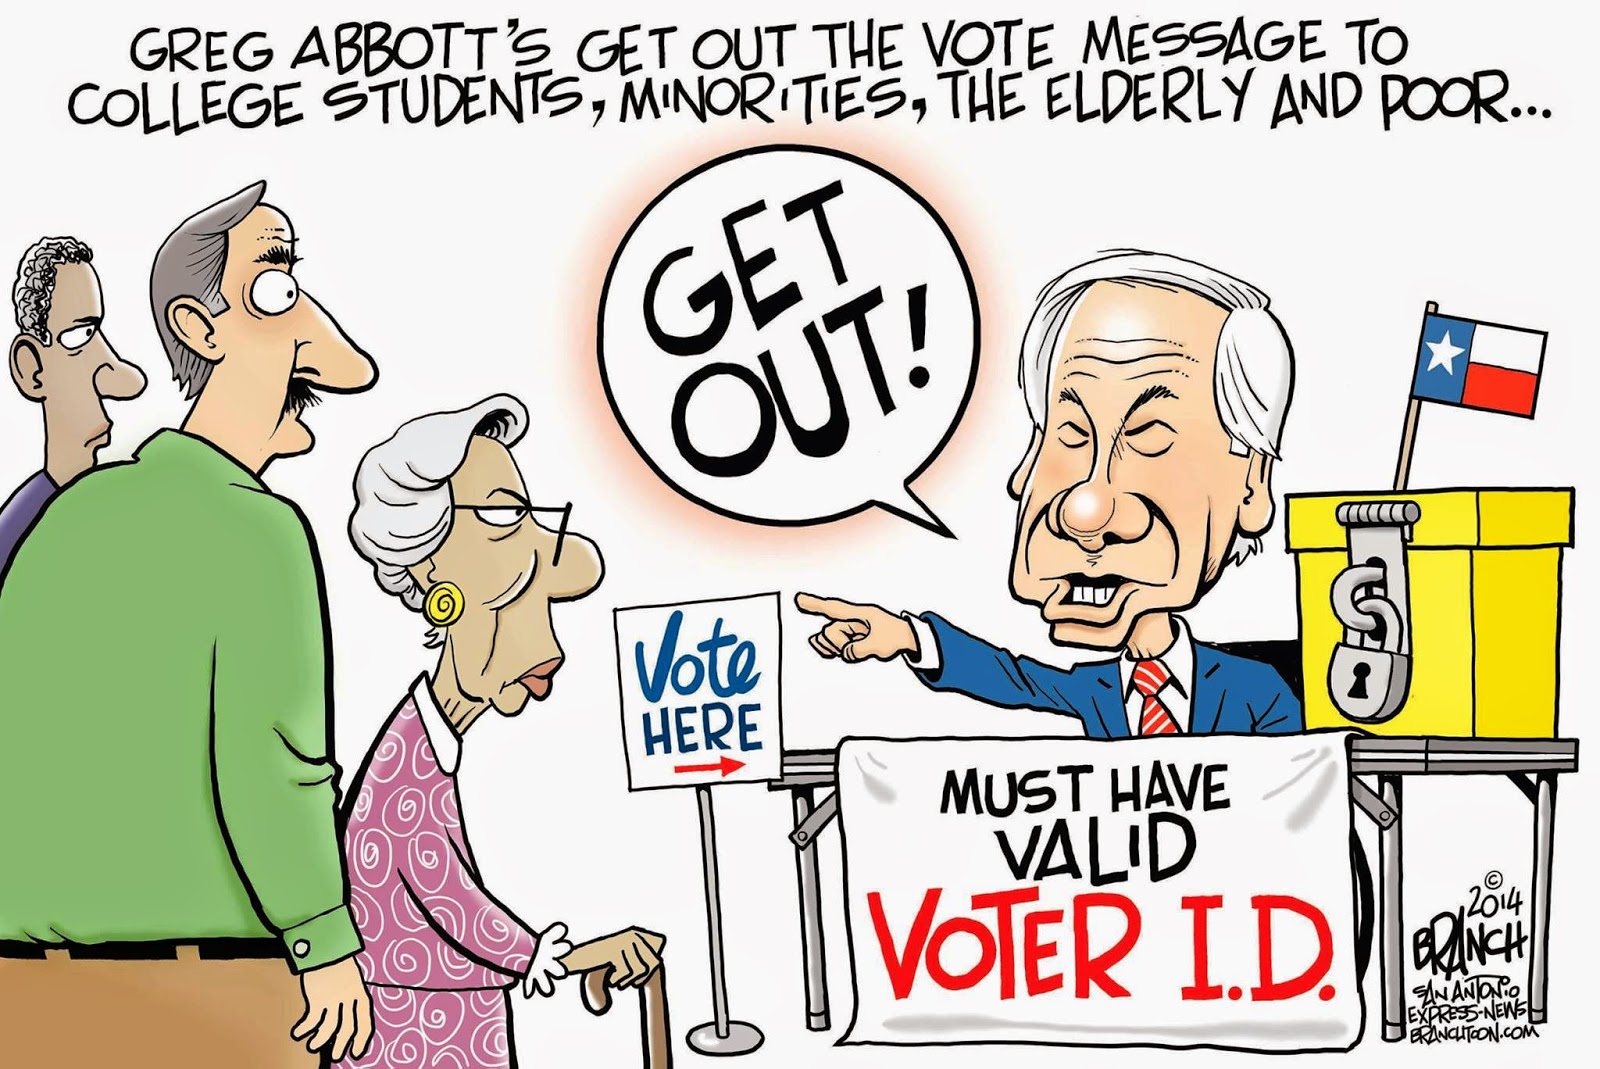 Greg Abbott's get out the vote message for the elderly, students, minorities, and the poor:  Abbot stands at ballot boxes, points to door, and yells,